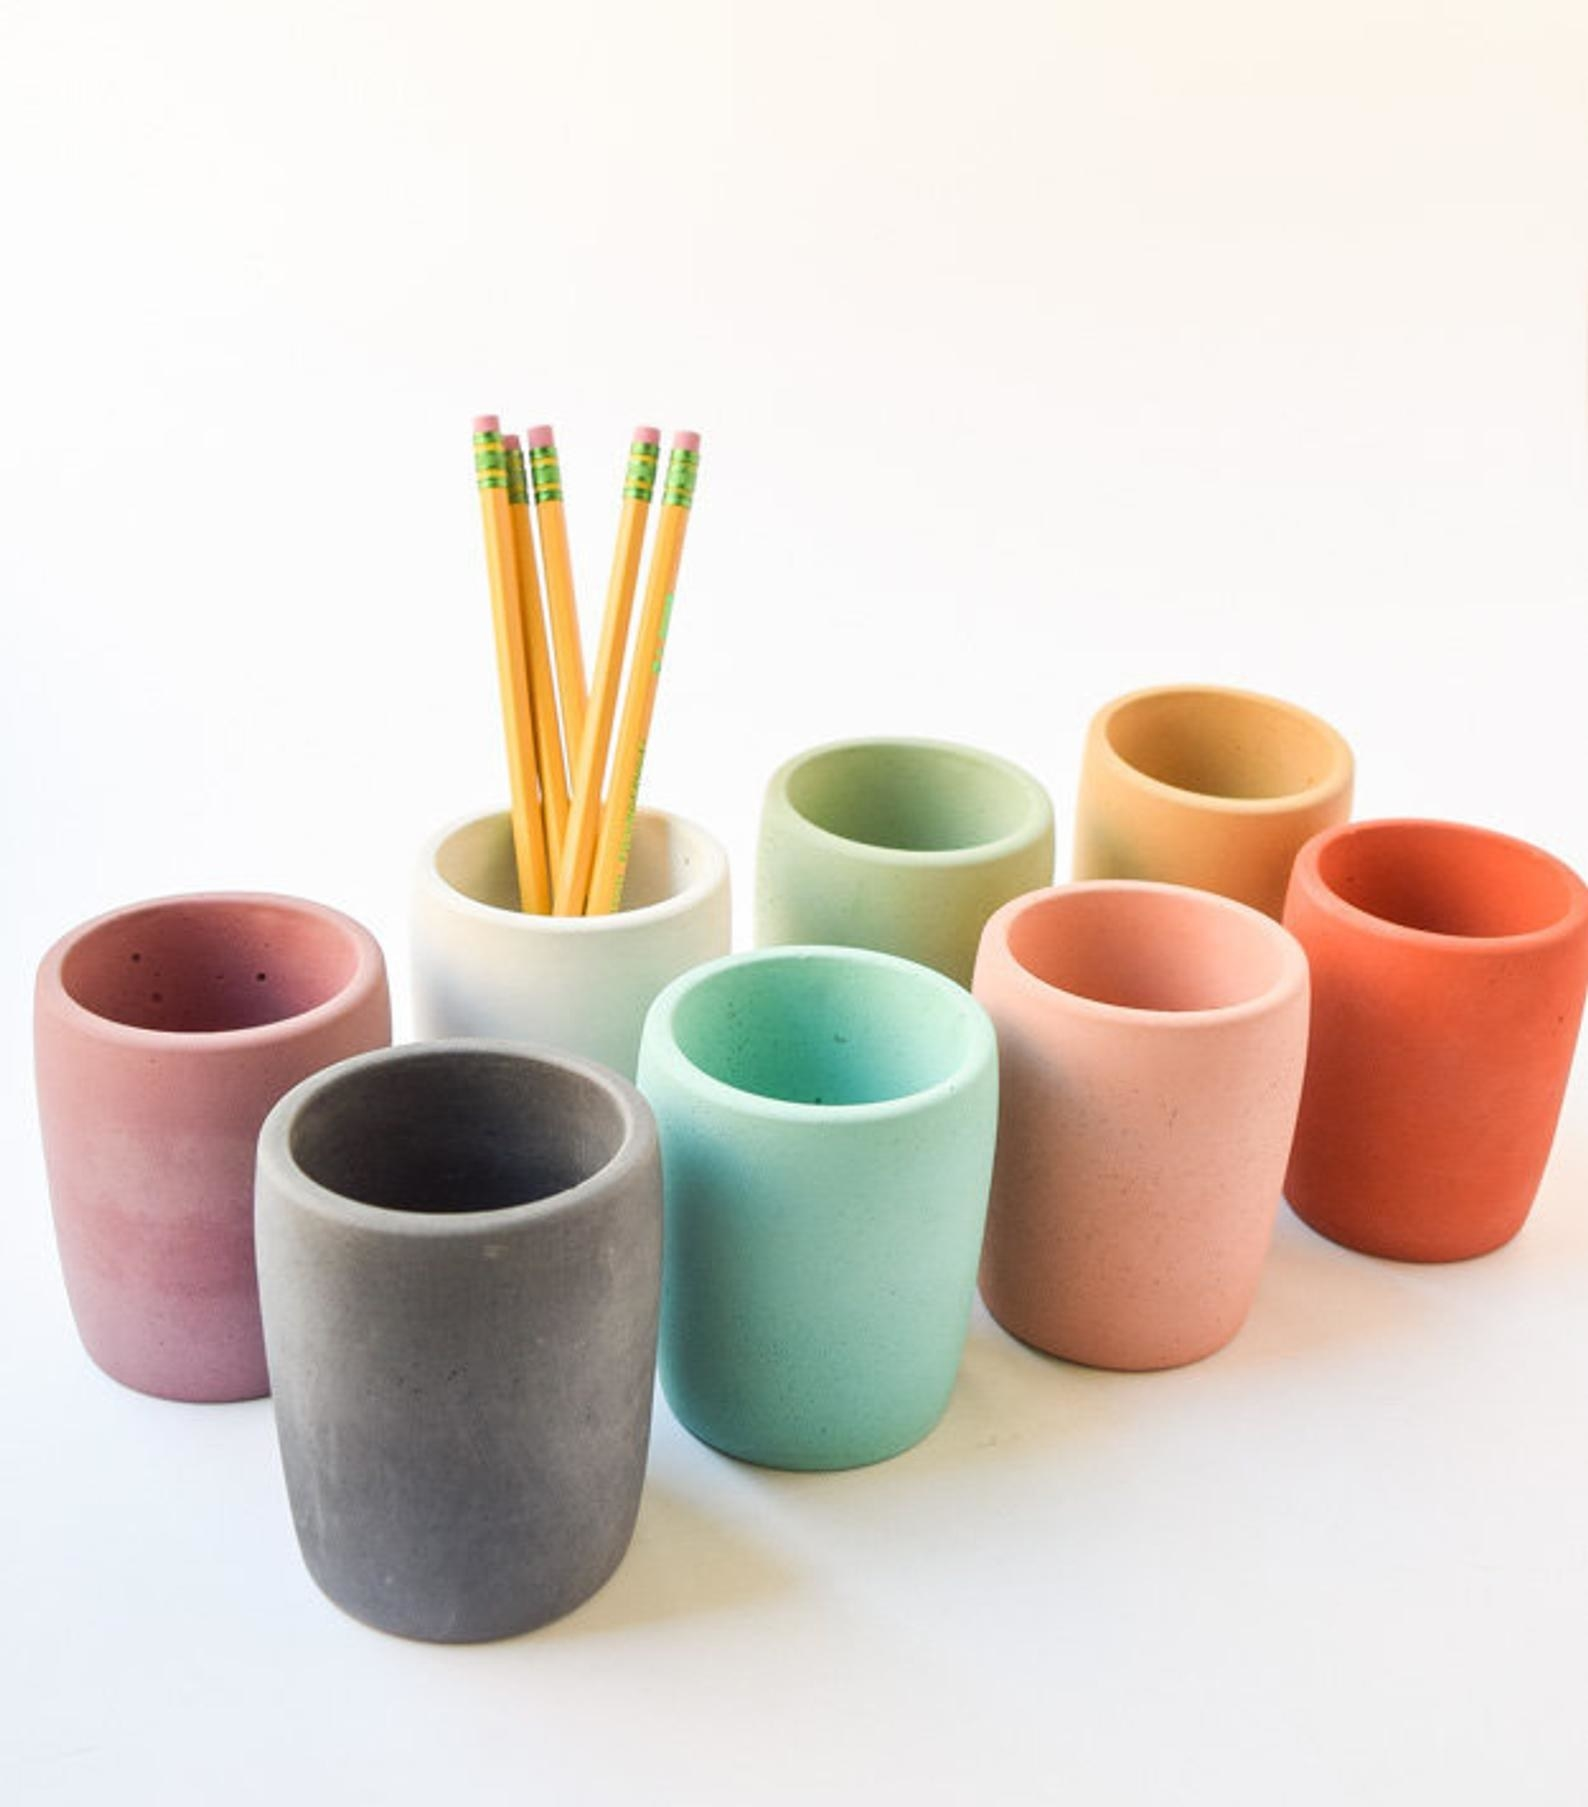 Eight concrete mugs in different colors